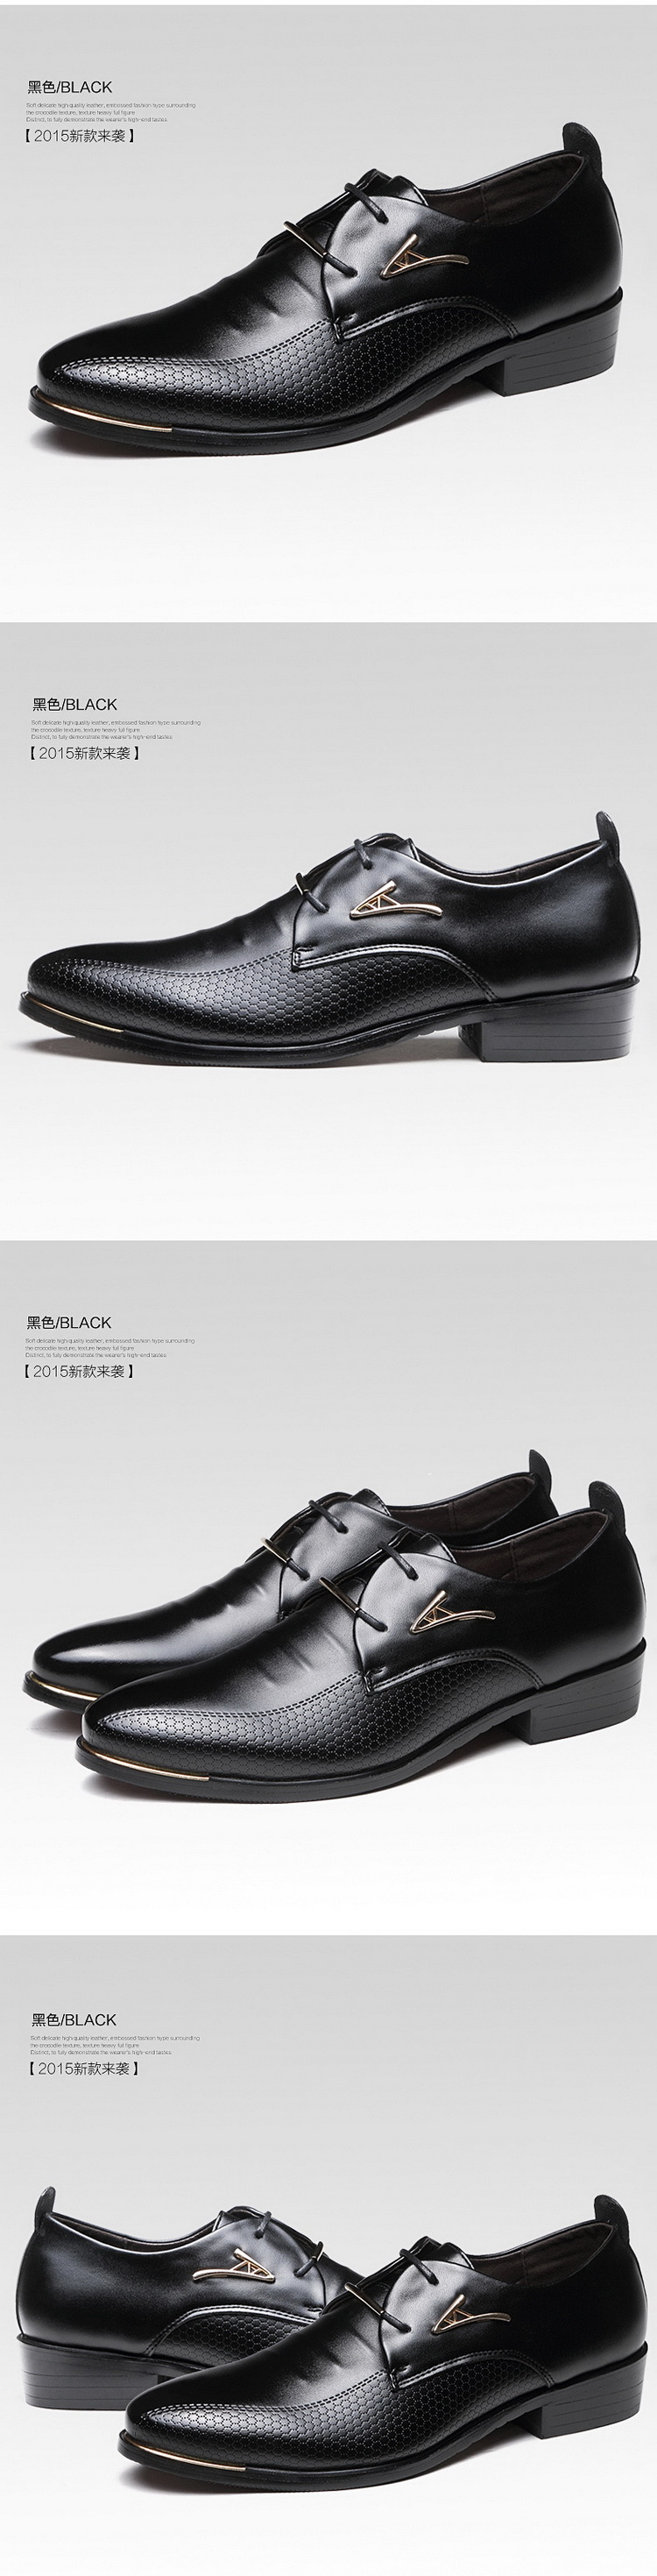 leather oxford shoes for men (14)